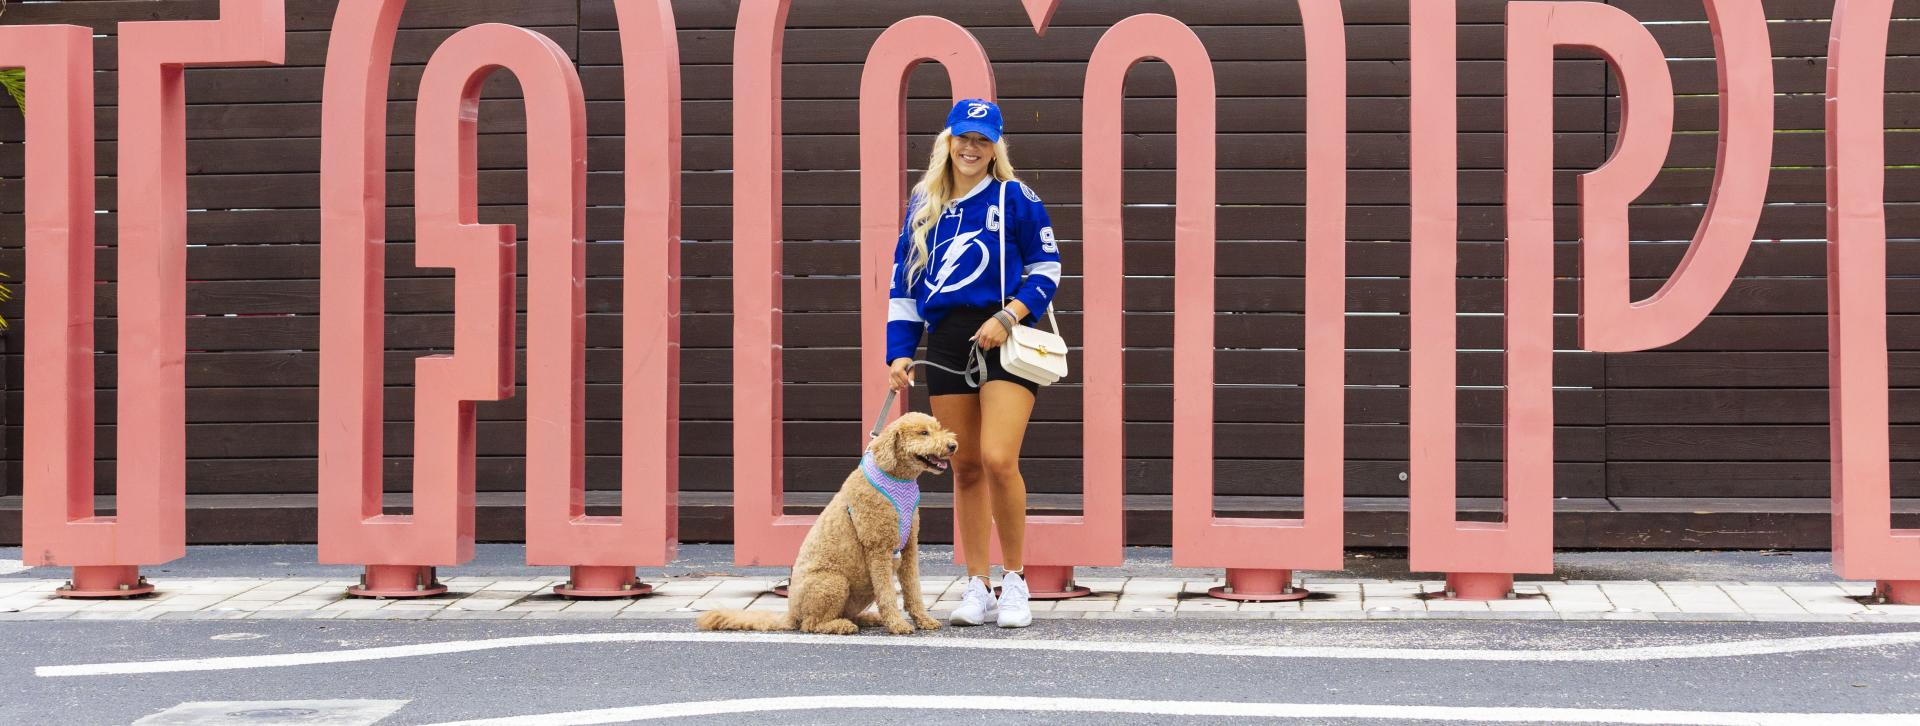 Tampa Dogs